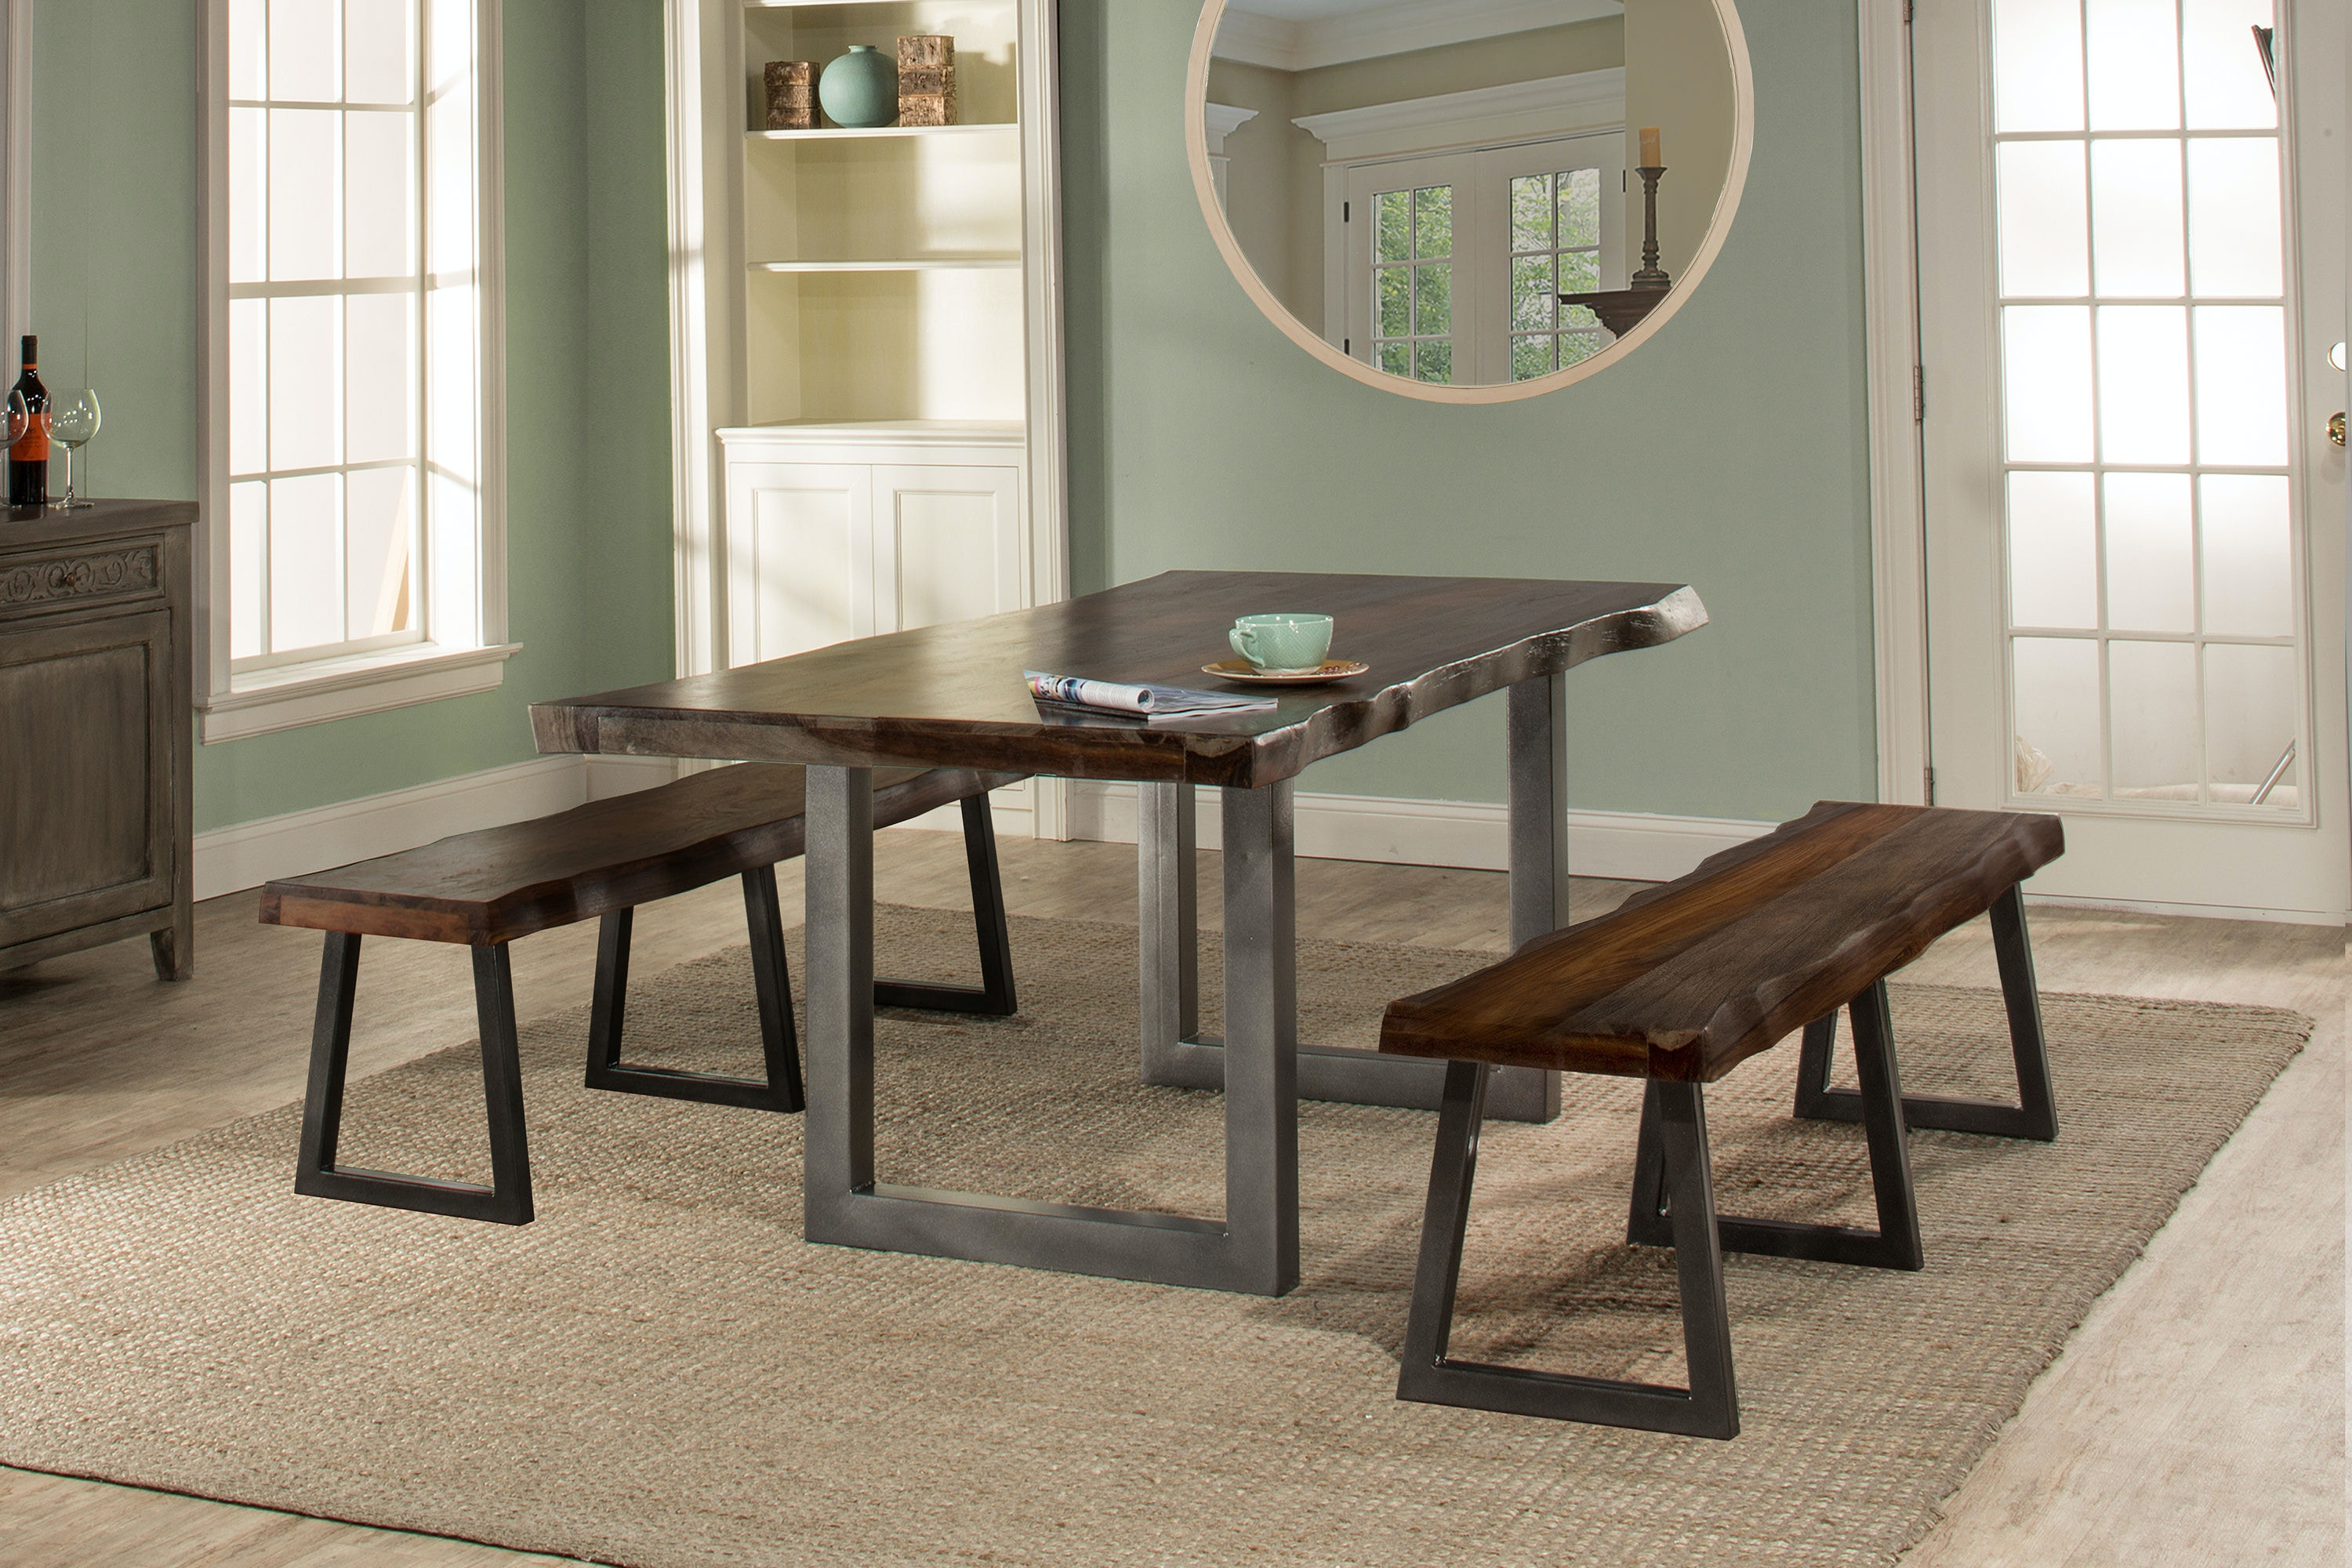 ... Hillsdale Furniture Emerson 3 Piece Rectangle Dining Set With Two (2)  Benches ...